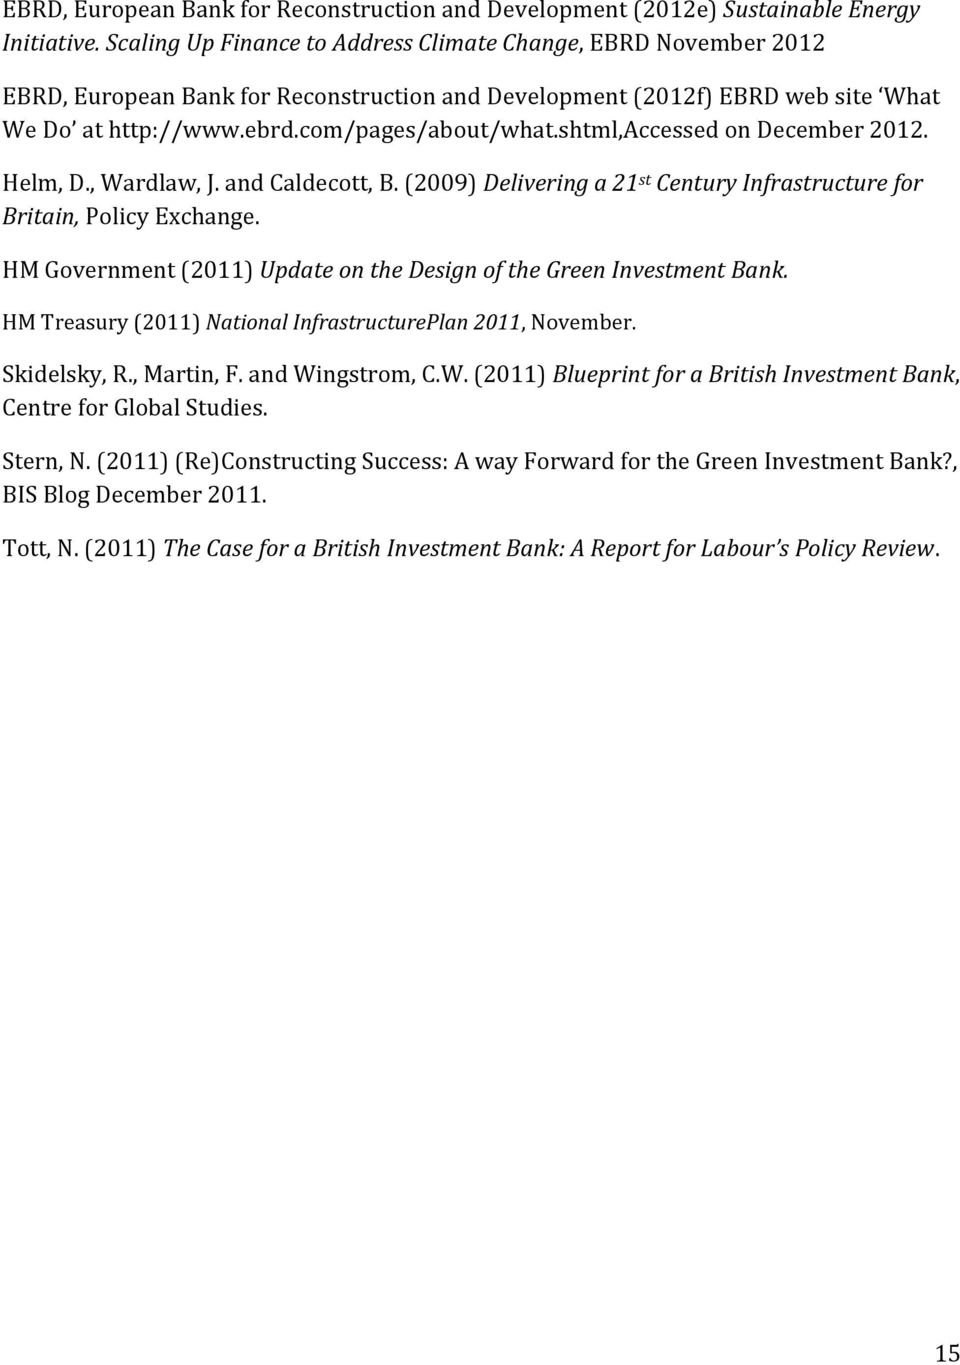 shtml,accessed on December 2012. Helm, D., Wardlaw, J. and Caldecott, B. (2009) Delivering a 21 st Century for Britain, Policy Exchange.